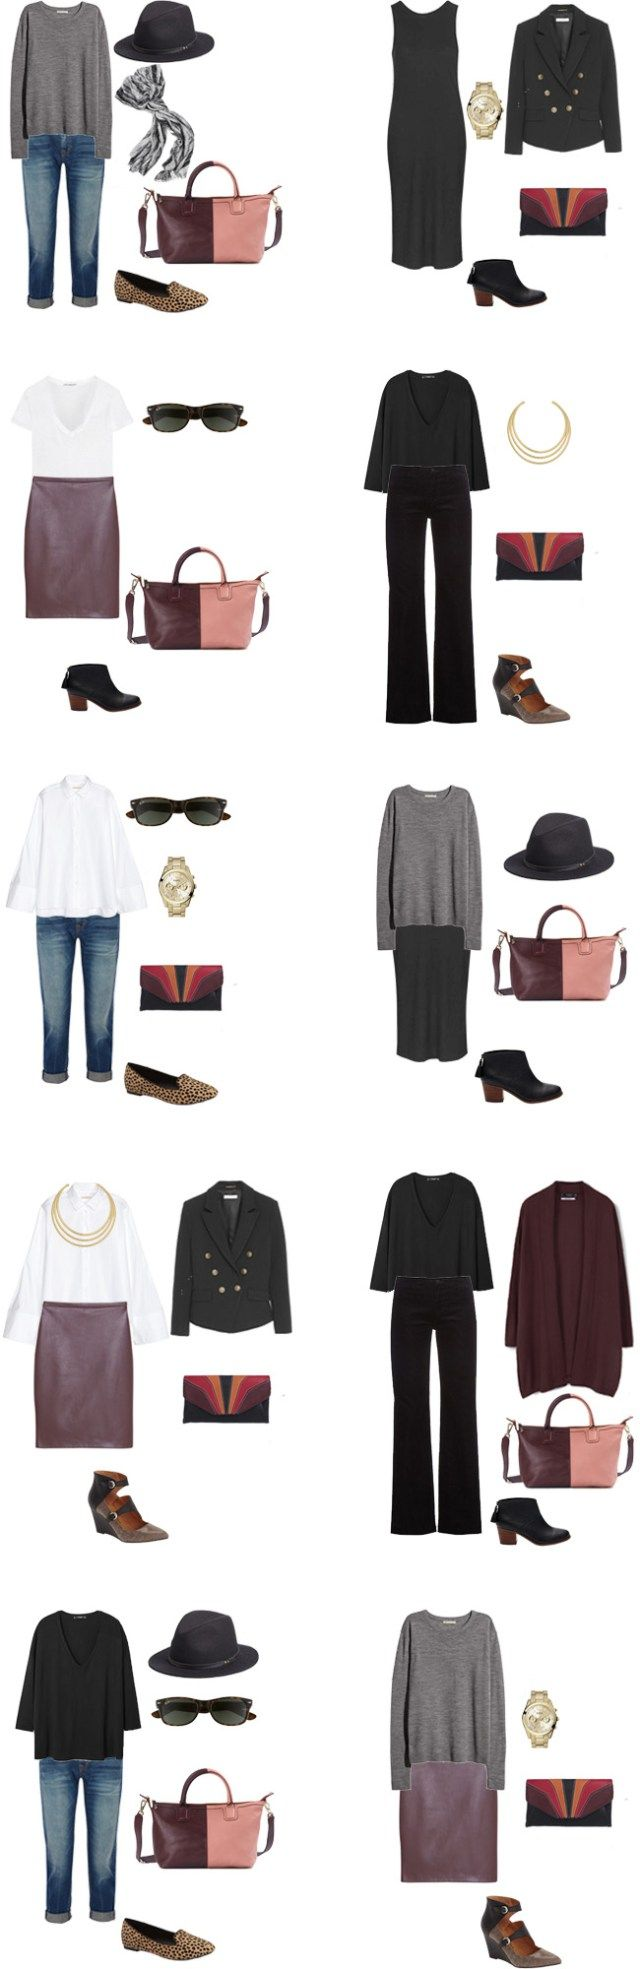 What to Wear for a Business Trip Outfits 11-20 #travel #traveltips #packinglight #travellight